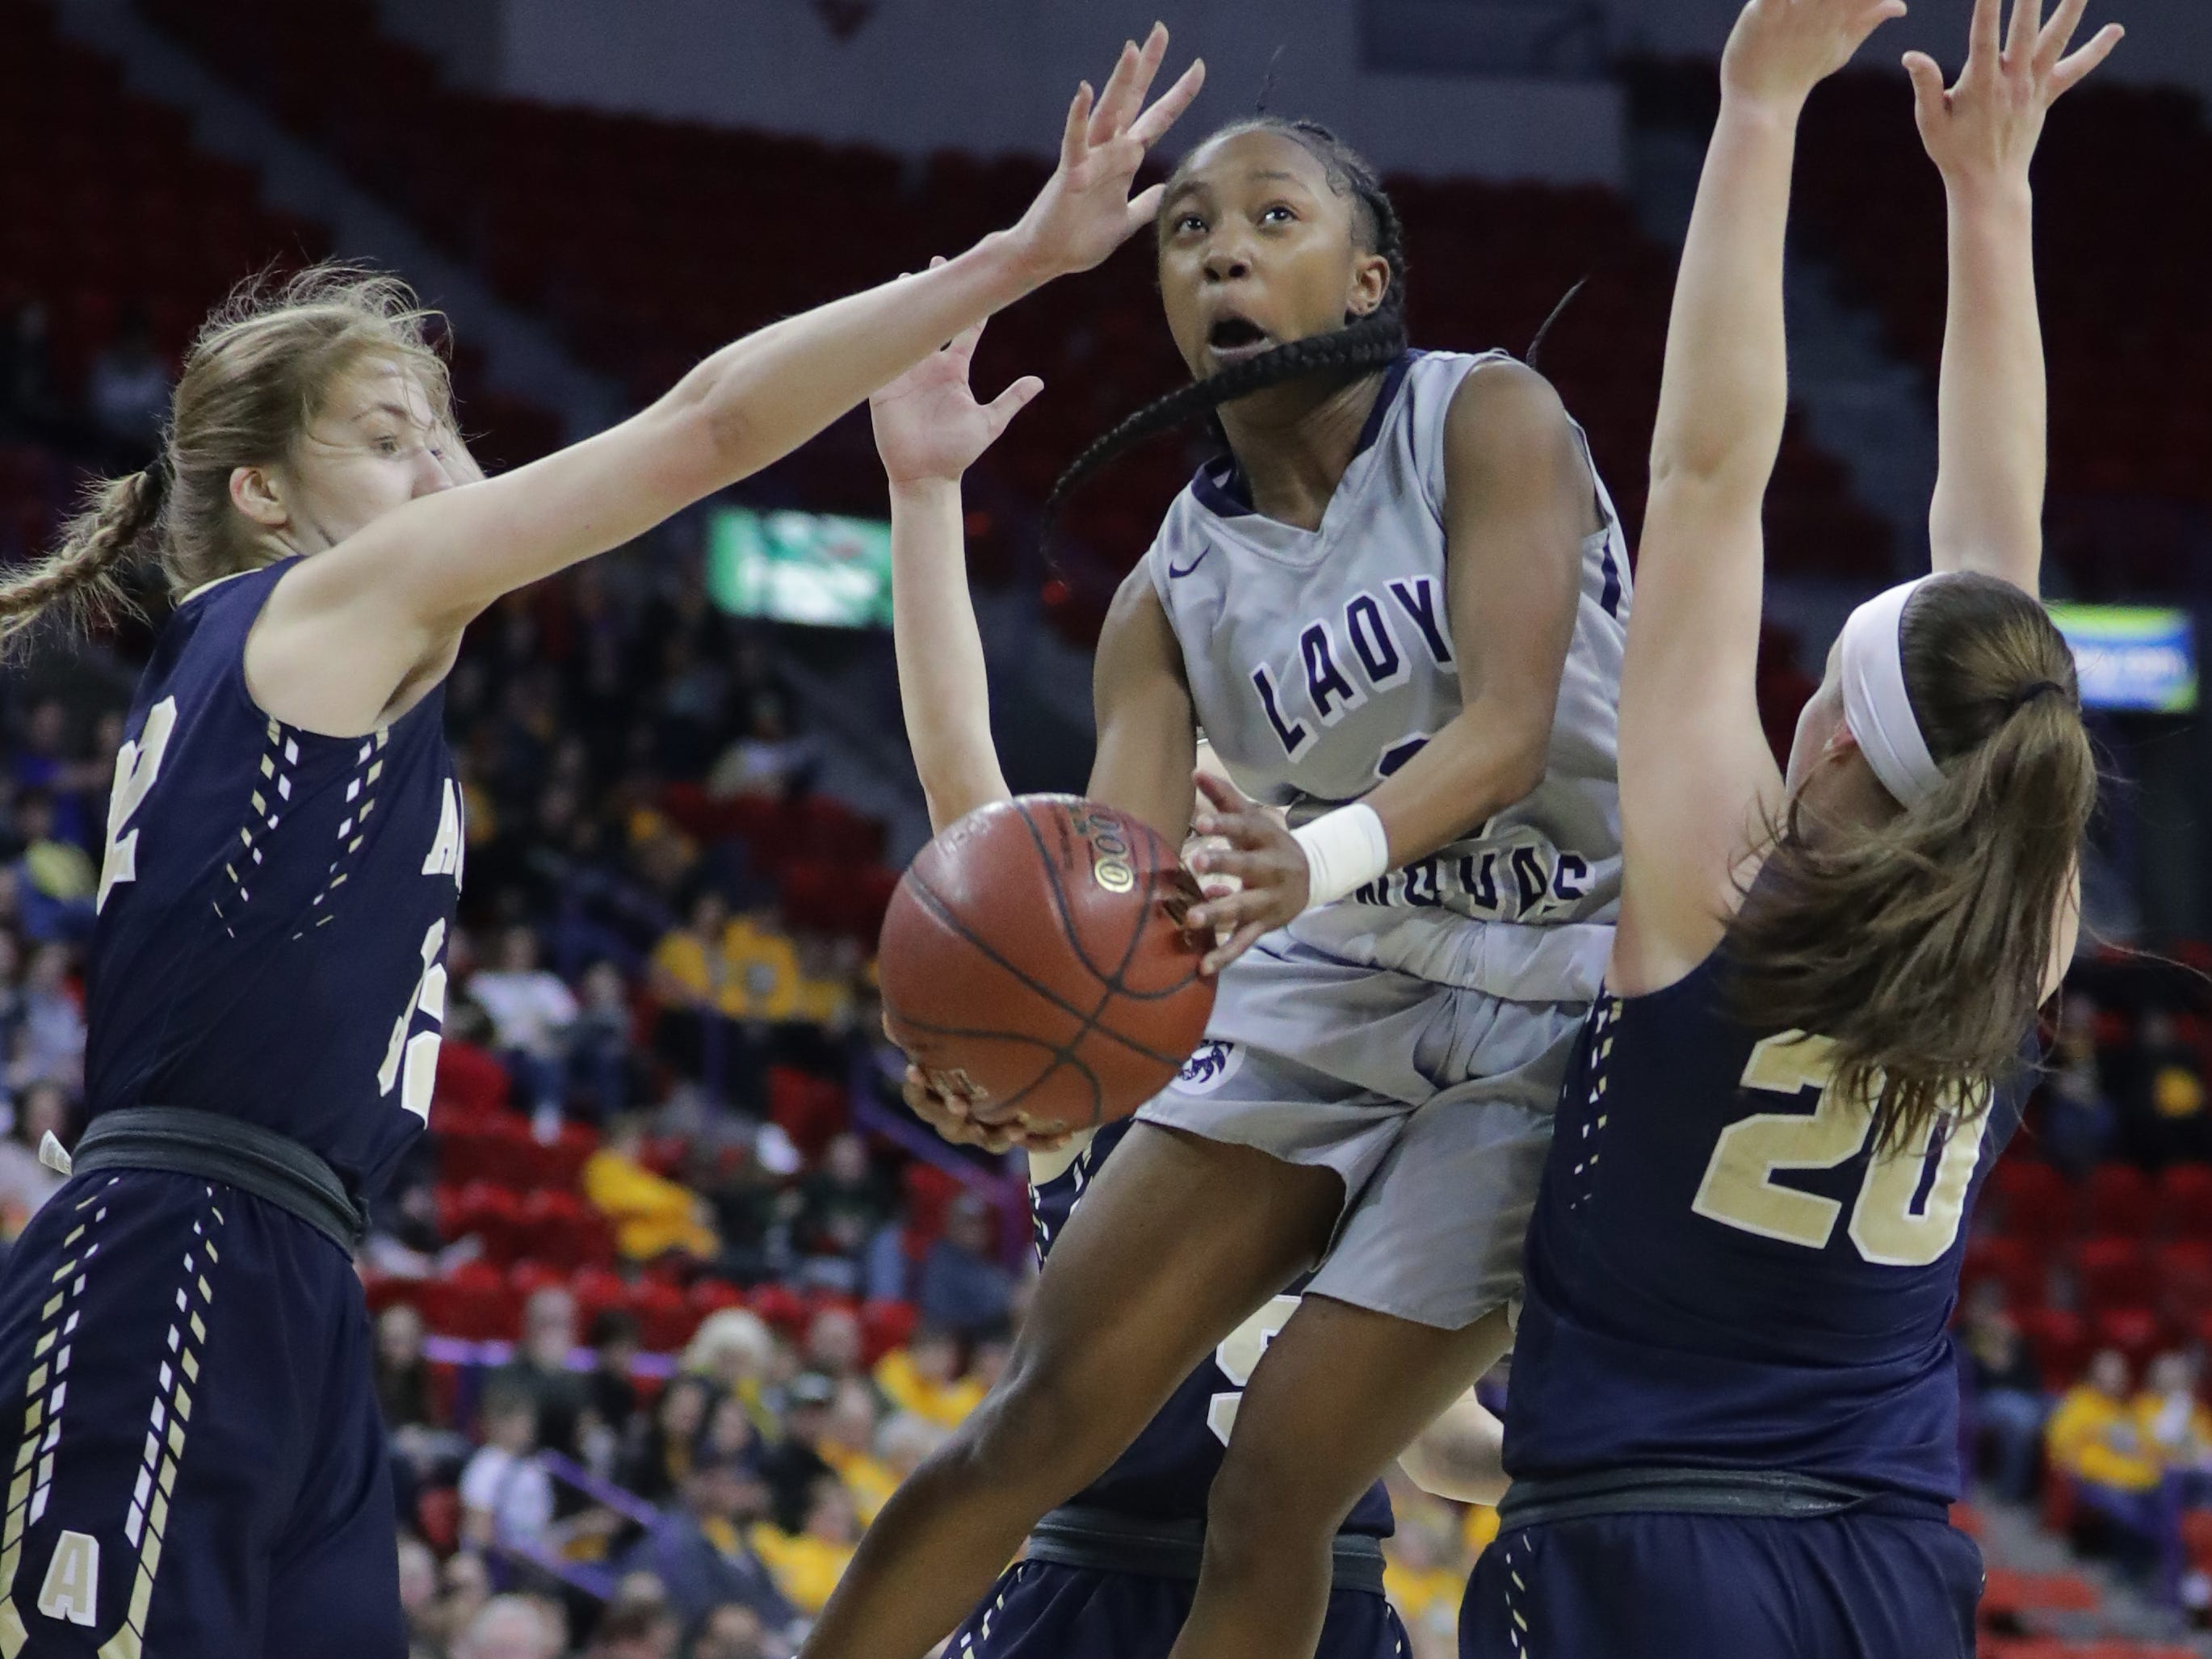 Three La Crosse Aquinas players converge on Milwaukee Academy of Science's Toniah Willimas (0) during the first half of their WIAA Division 4 state semifinal game Thursday, March 7, 2019, at the Resch Center in Ashwaubenon. La Crosse Aquinas beat Milwaukee Academy of Science 77-59.